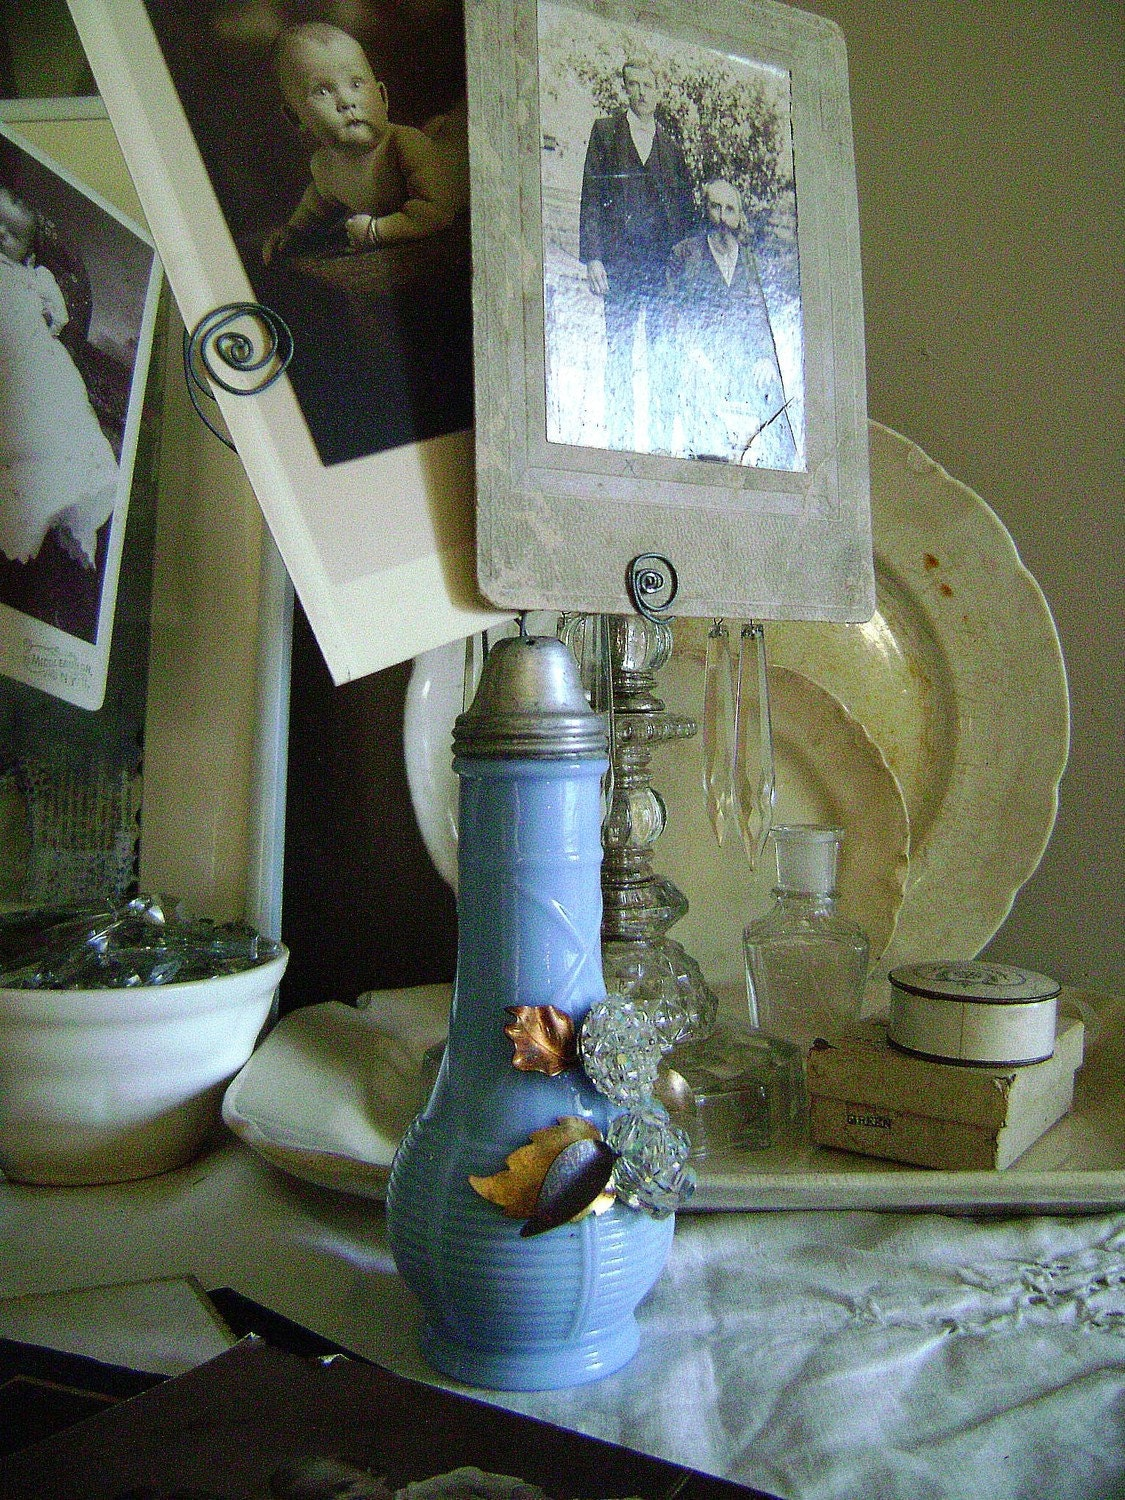 Periwinkle, as seen in Somerset Life, vintage assemblage photograph display holders by Jennifer Valentine on Etsy